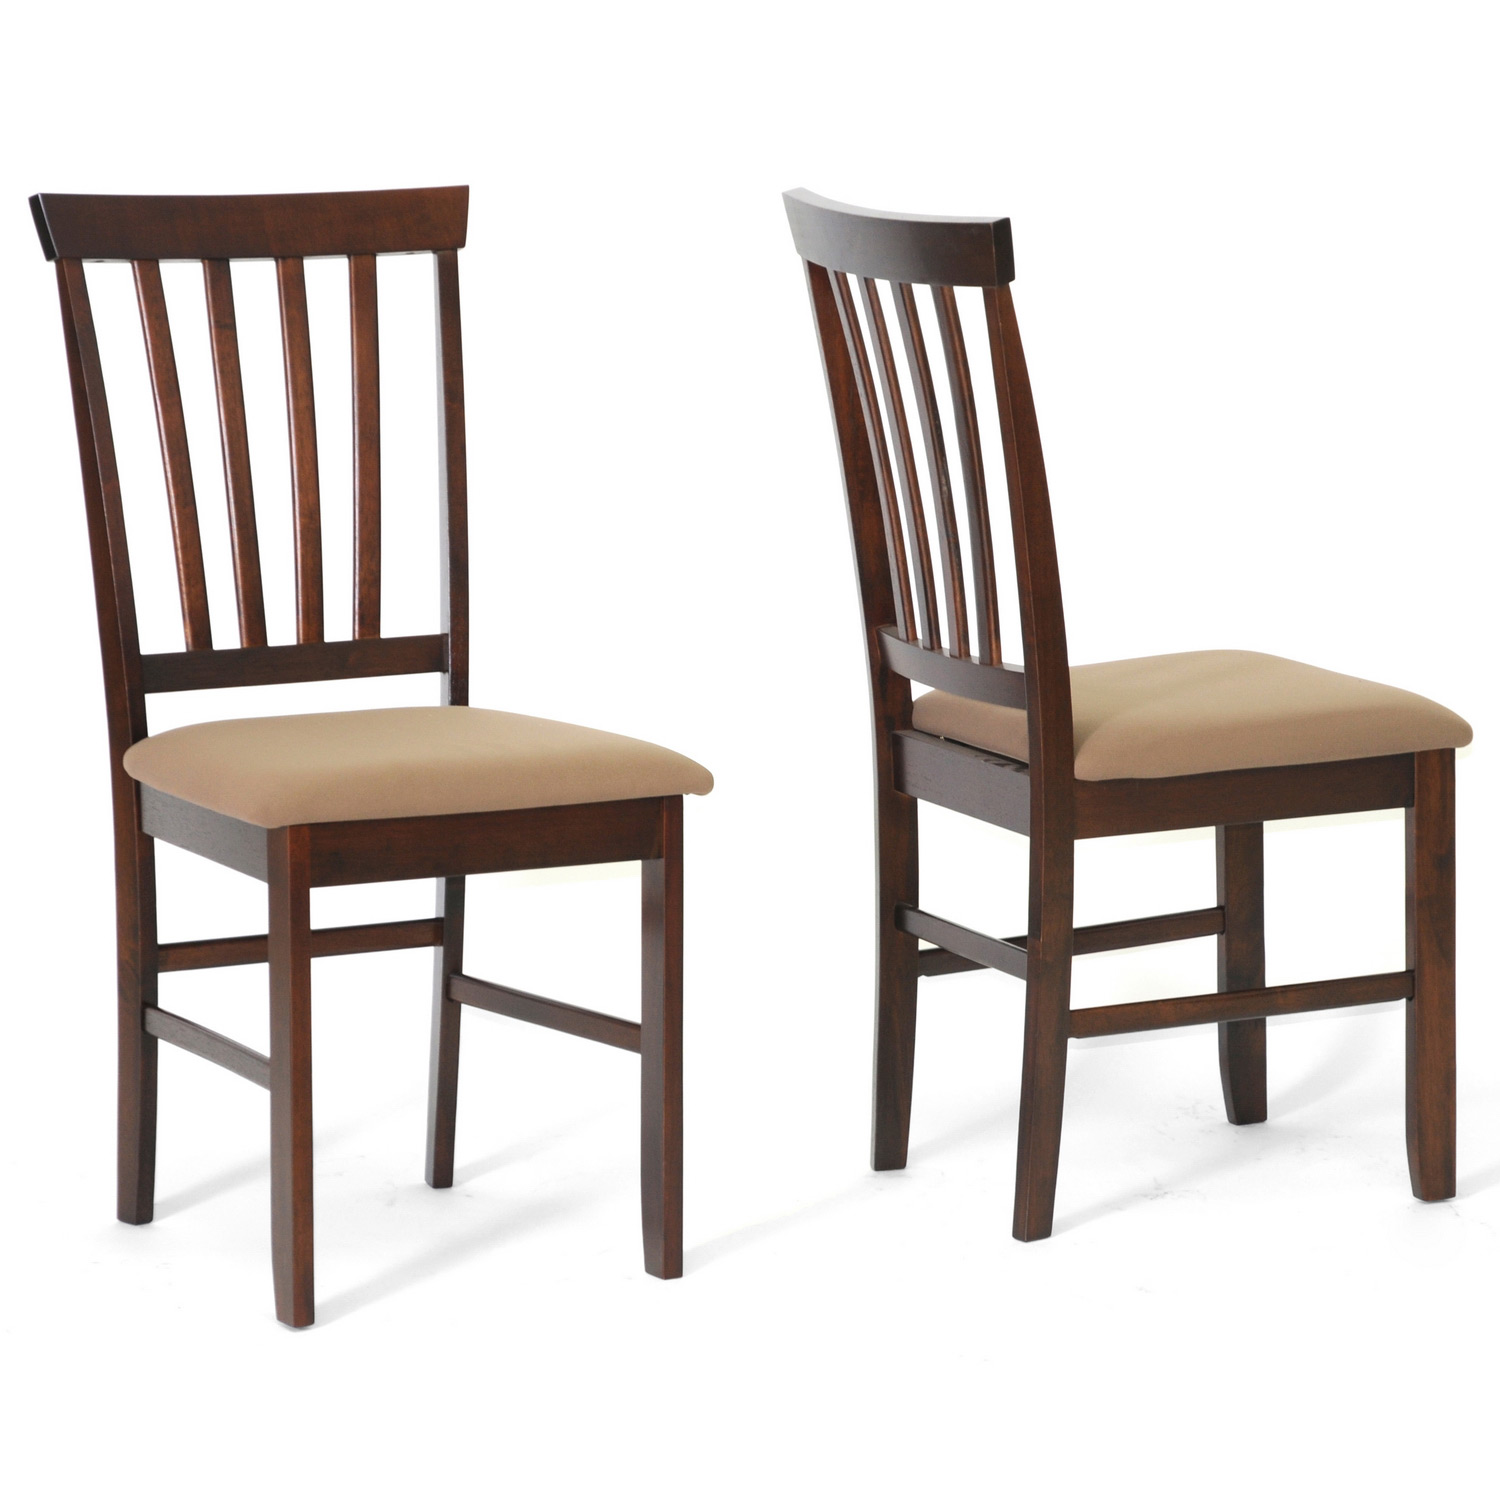 Wood Dining Chair Tiffany Brown Wood Modern Dining Chairs Set Of 2 By